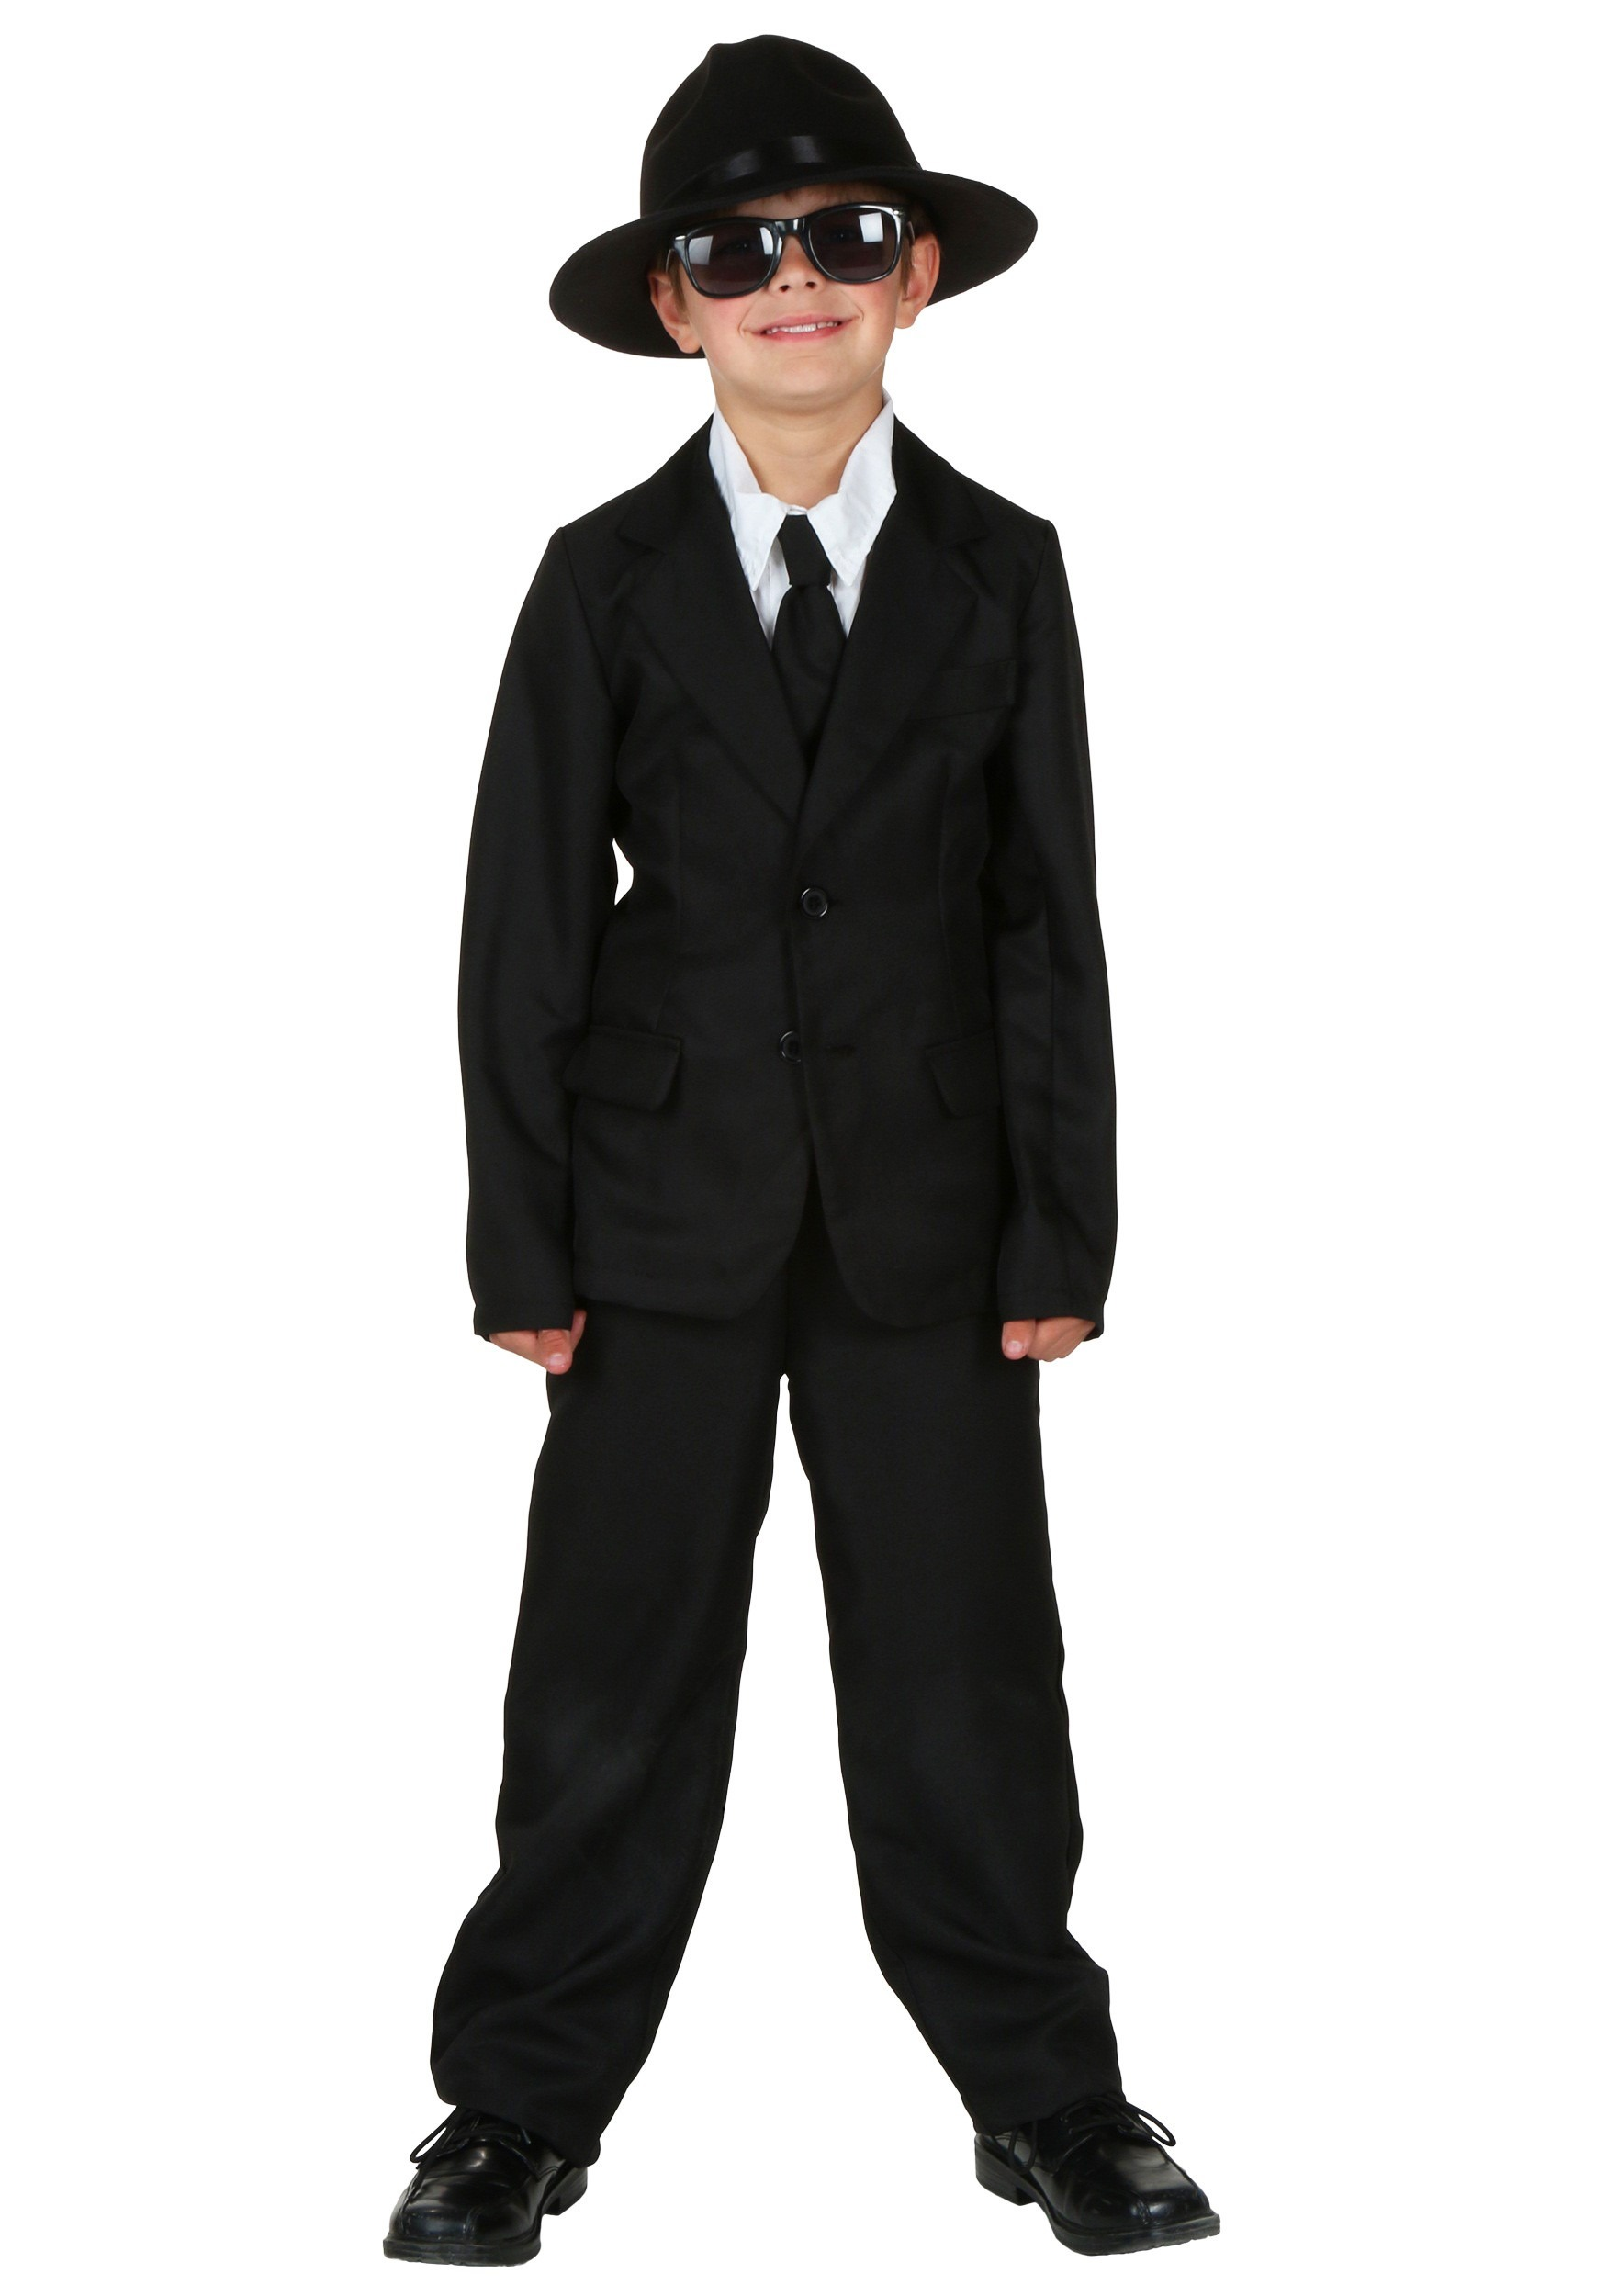 Black Suit For Kids Costume